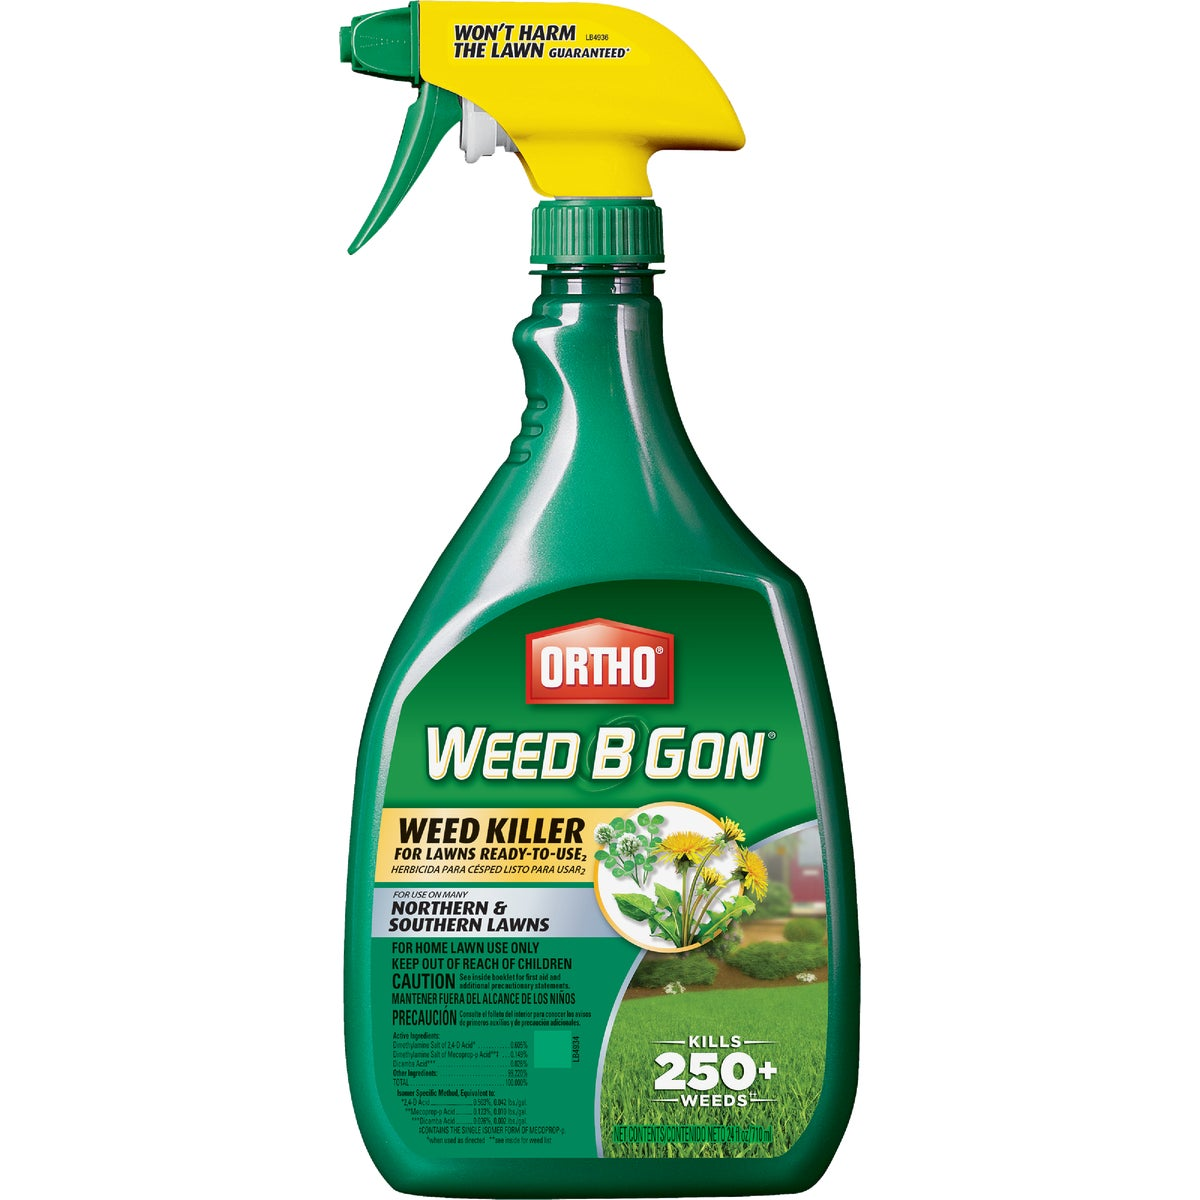 24OZ WEED B GON SPRAY - 0404010 by Scotts Company